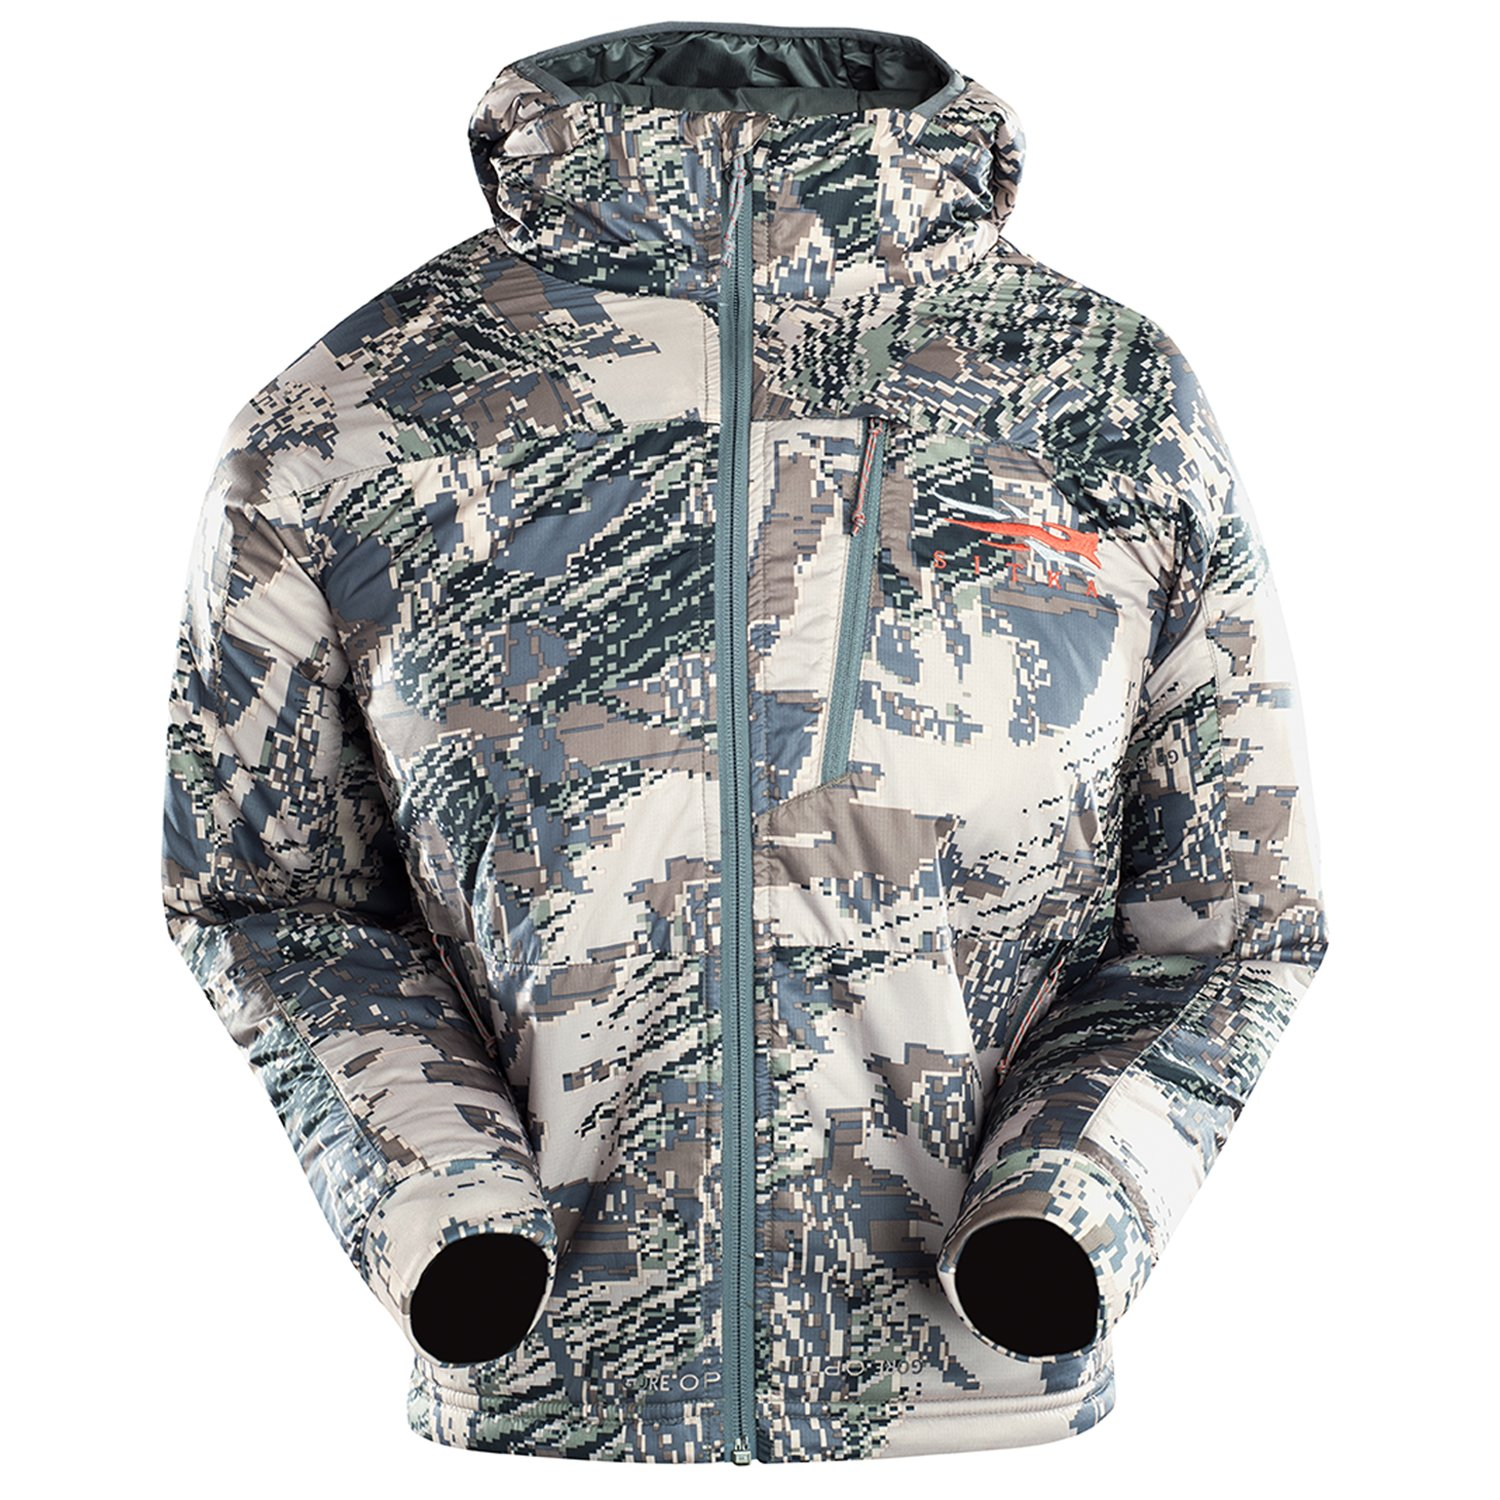 SITKA Gear Rankine Hoody Optifade Open Country Youth Small - Discontinued by SITKA